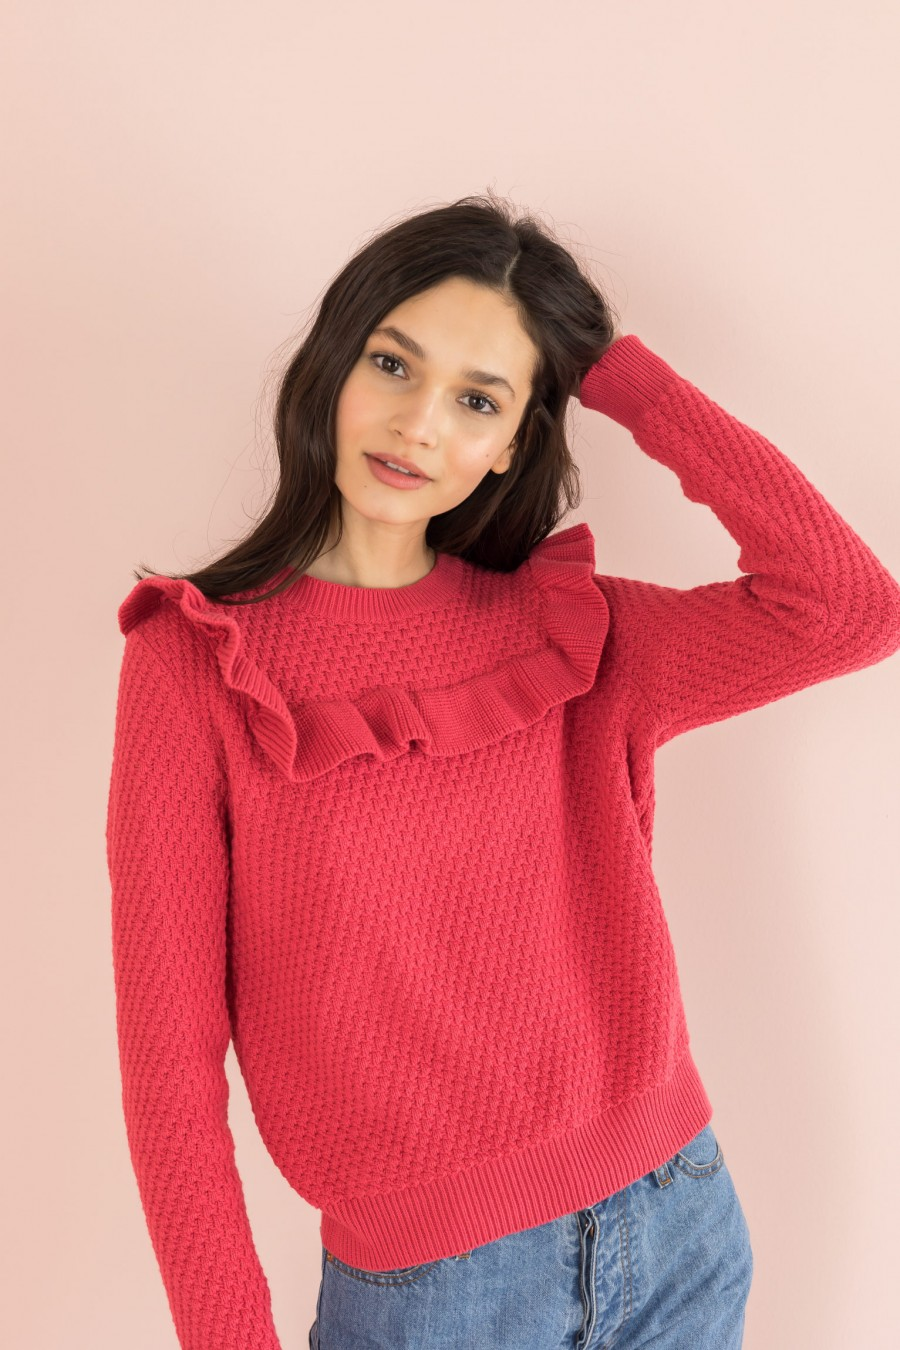 cyclamen cotton sweater with ruffle